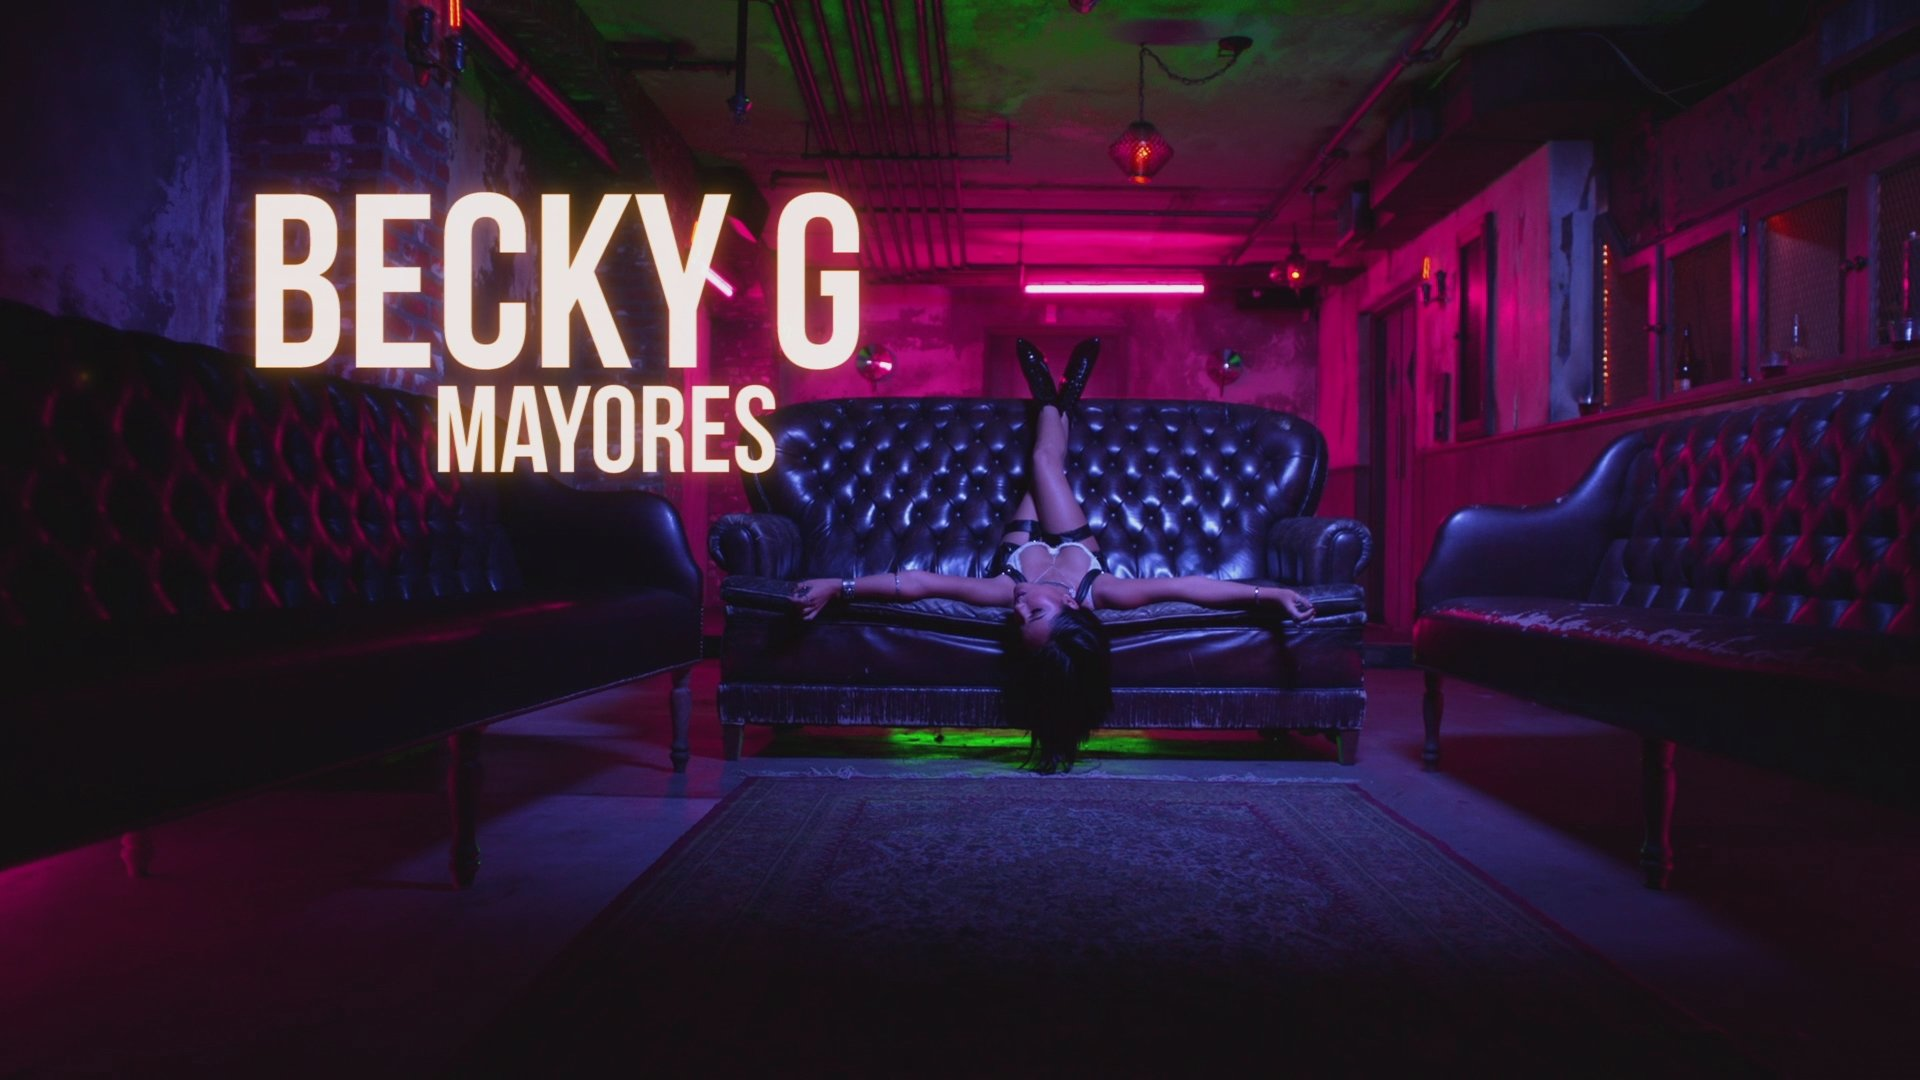 becky g behind the music with becky mayores youtube